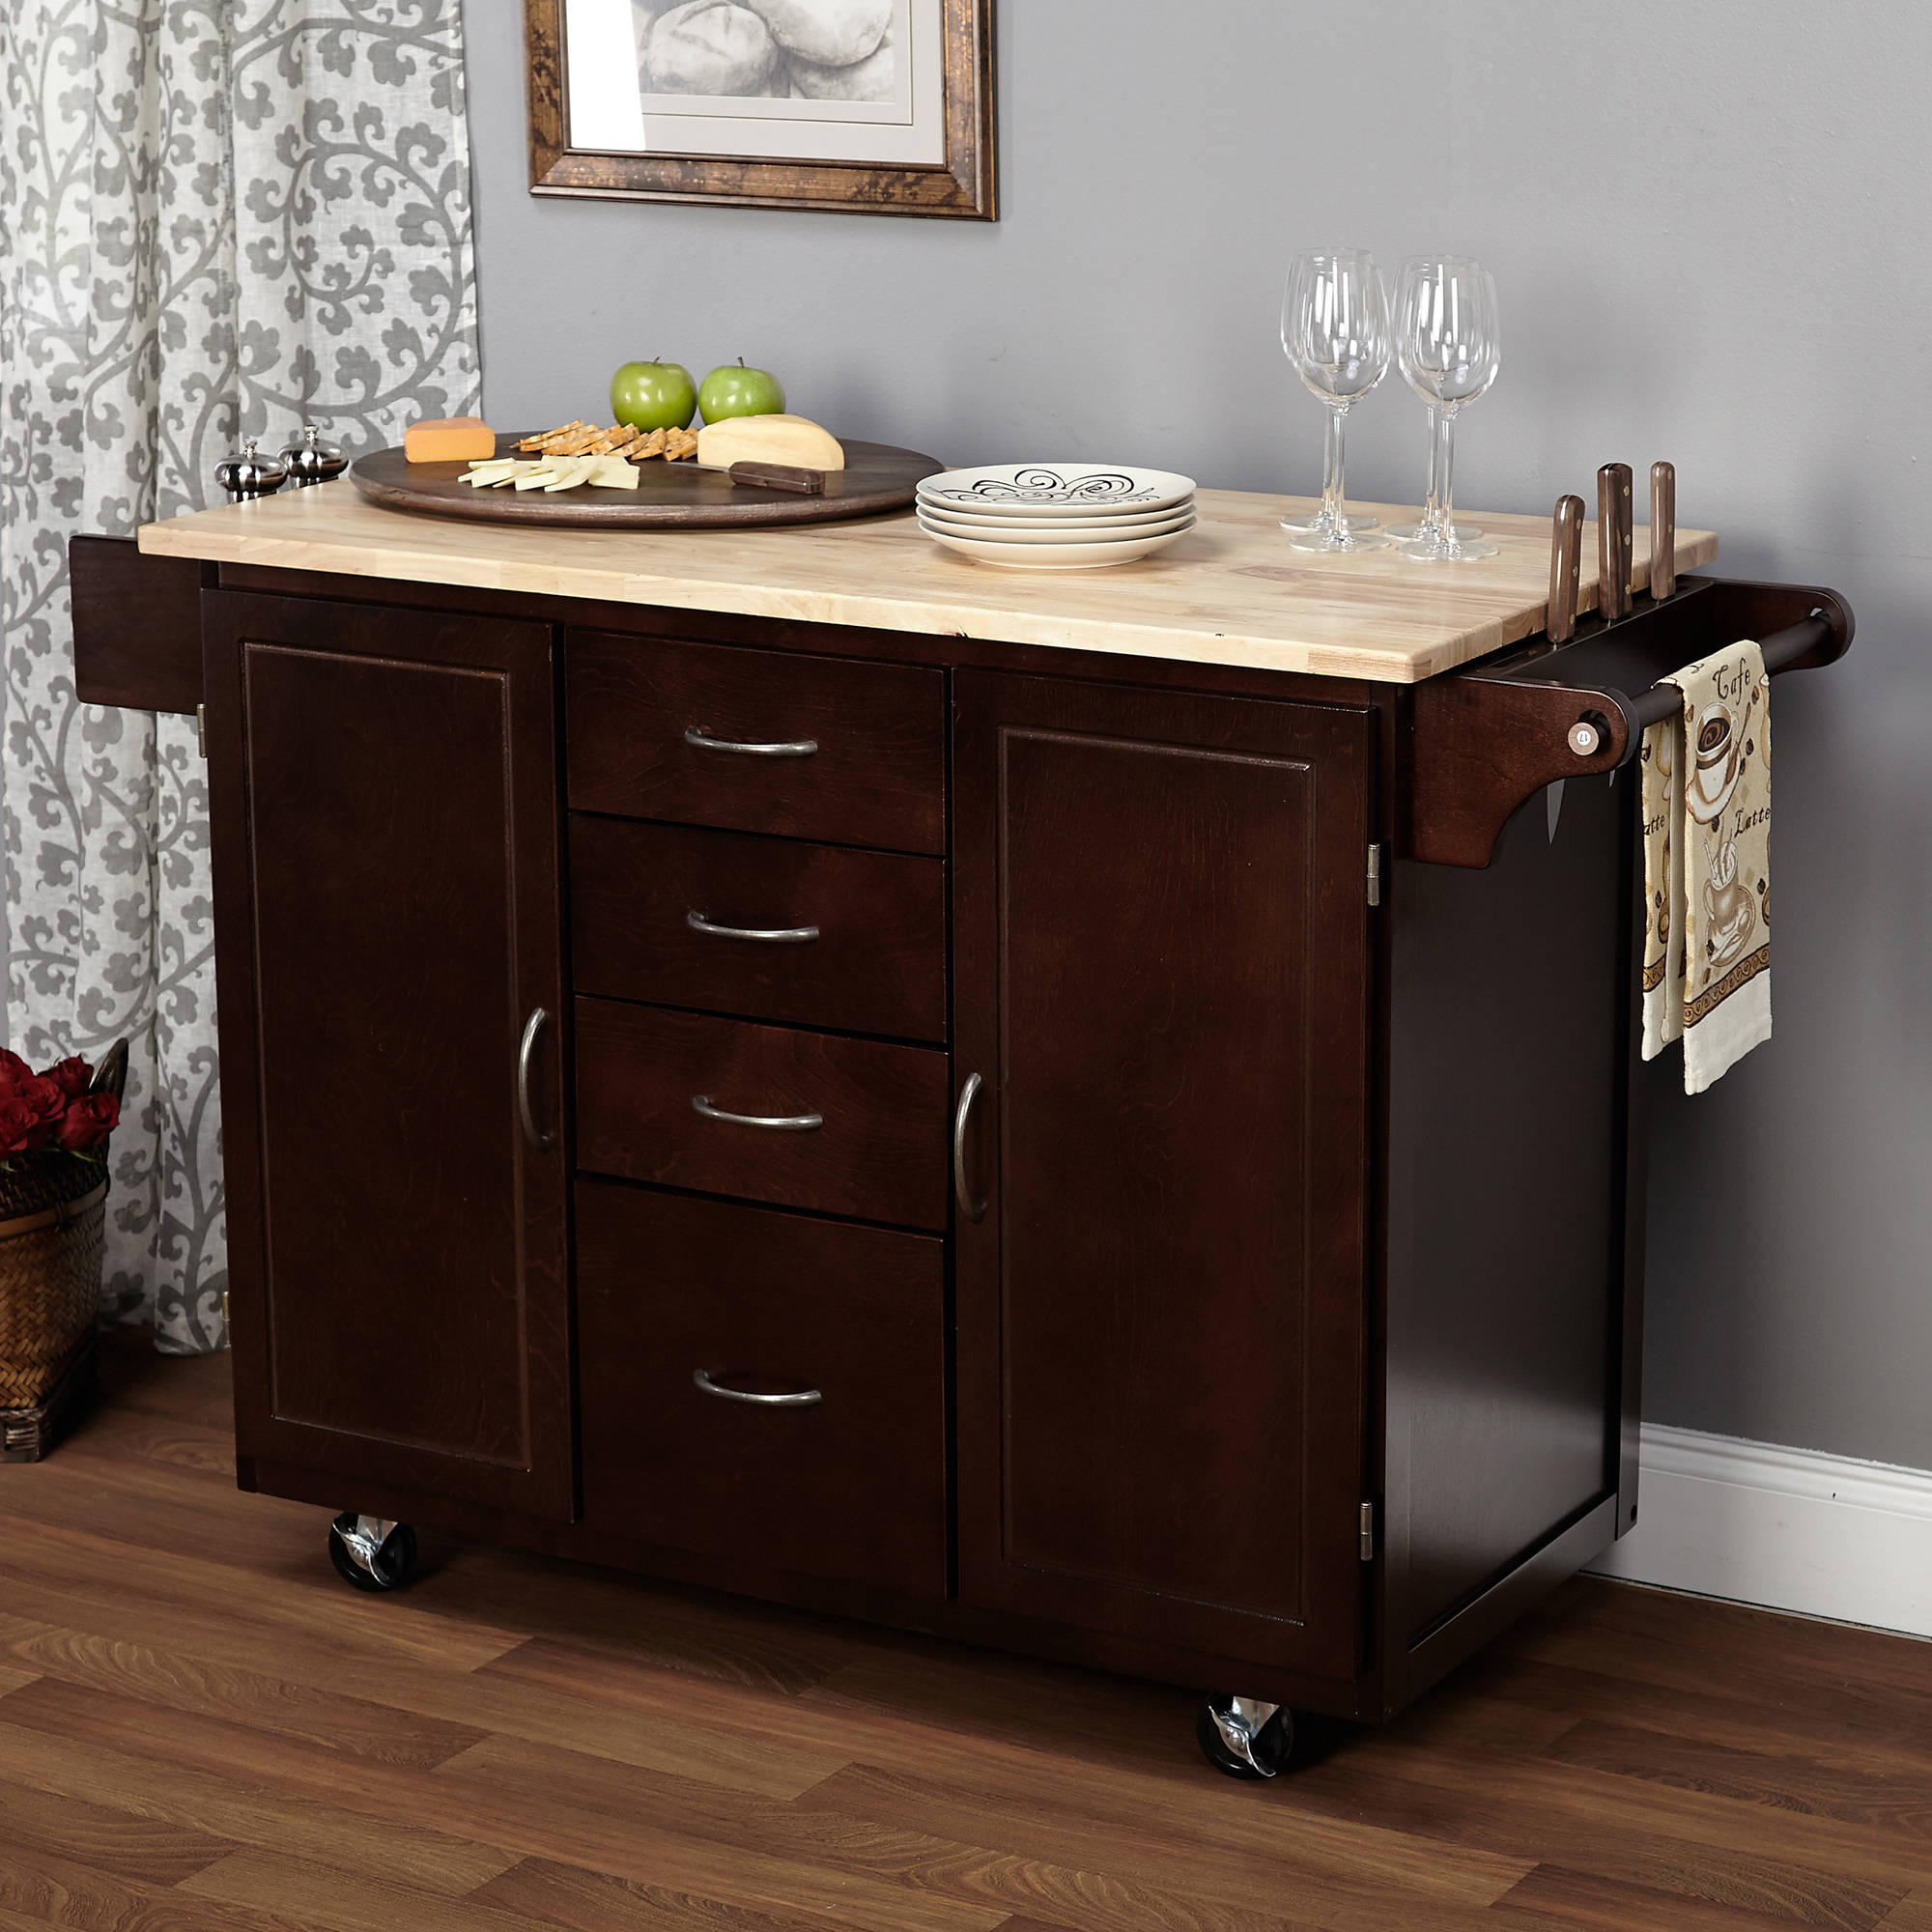 kitchen island carts aid ice maker ehemco cart natural butcher block bamboo top with white base walmart com